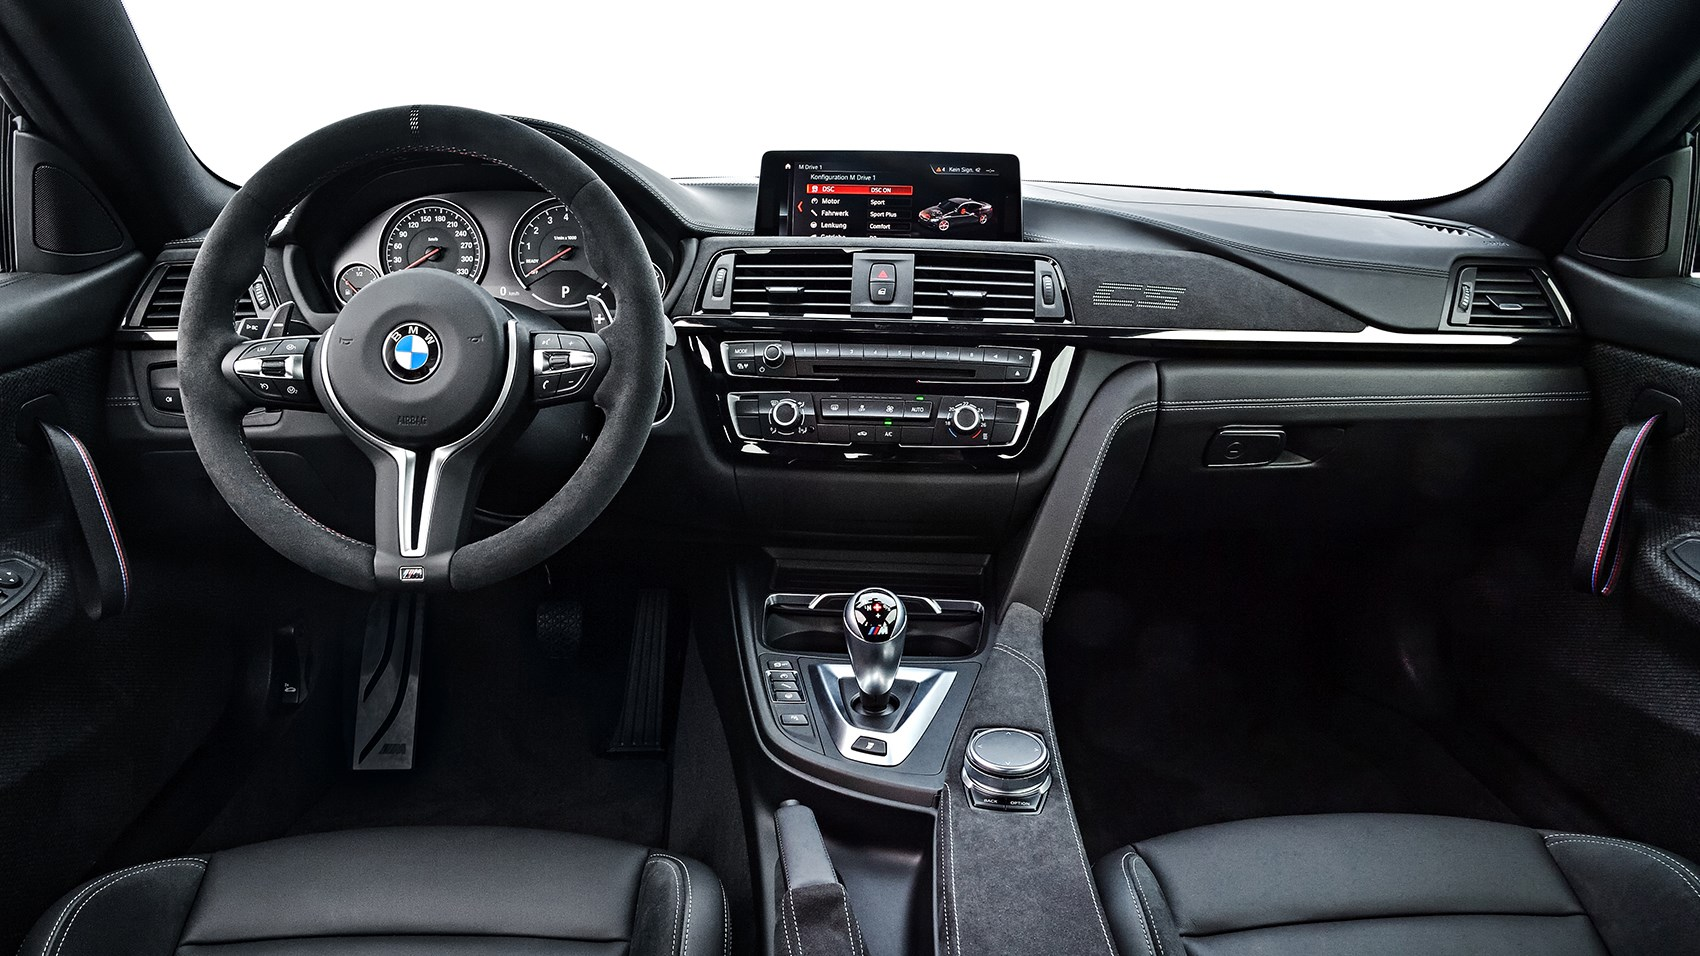 BMW M4 CS interior